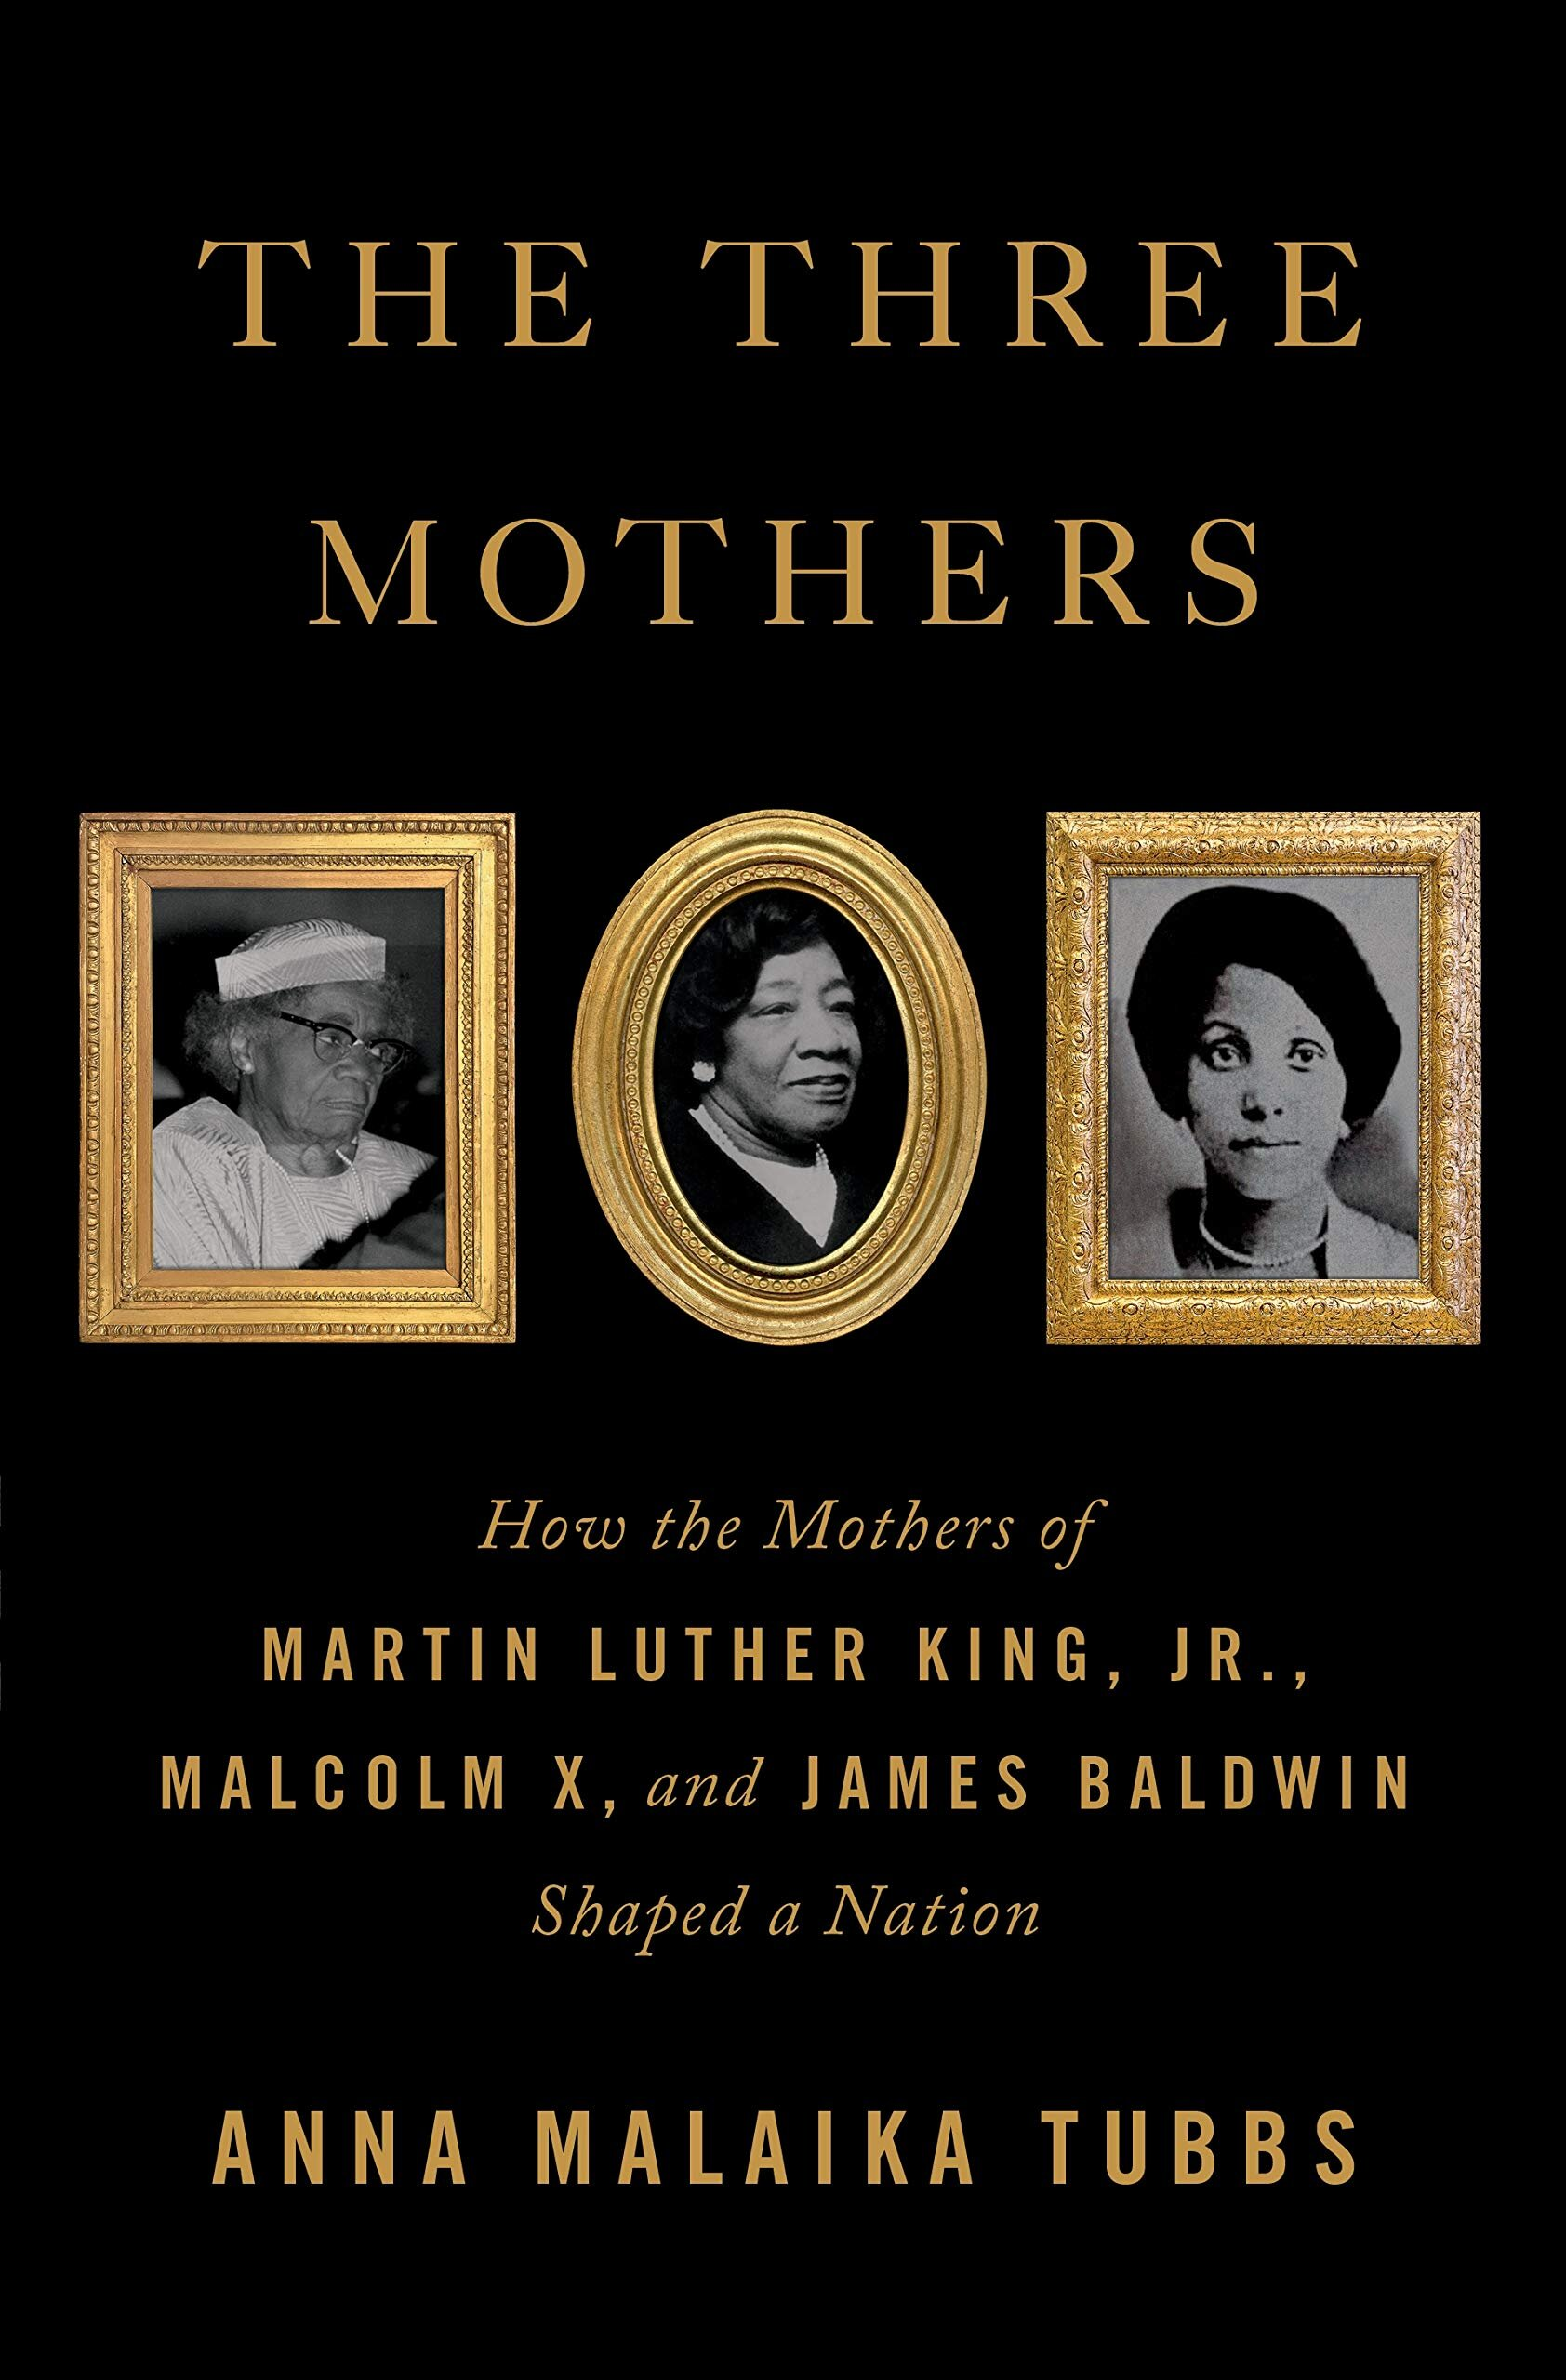 Martin Luther King Malcolm X : martin, luther, malcolm, Three, Mothers:, Mothers, Martin, Luther, King,, Malcolm, James, Baldwin, Shaped, Nation, Bookshelf, Thomasville,, Georgia